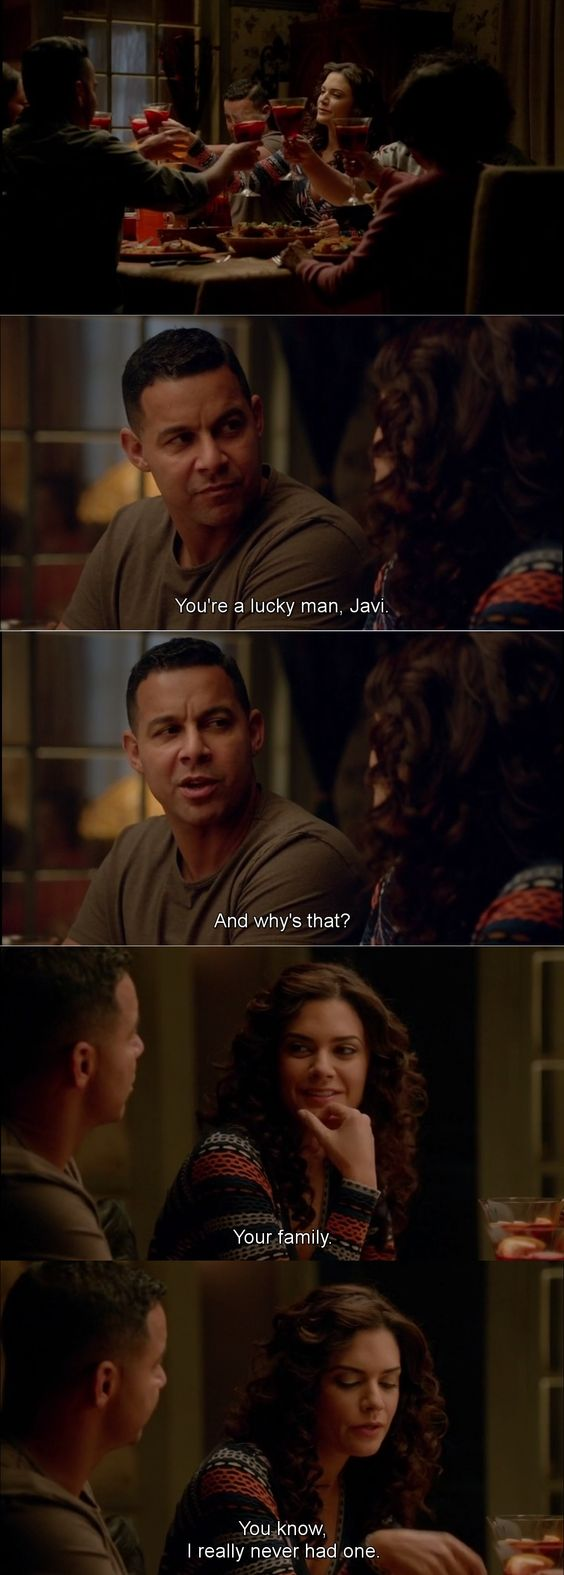 """""""You're a lucky man, Javi. Your family. I really never had one"""" - Sonia and Esposito #Castle"""